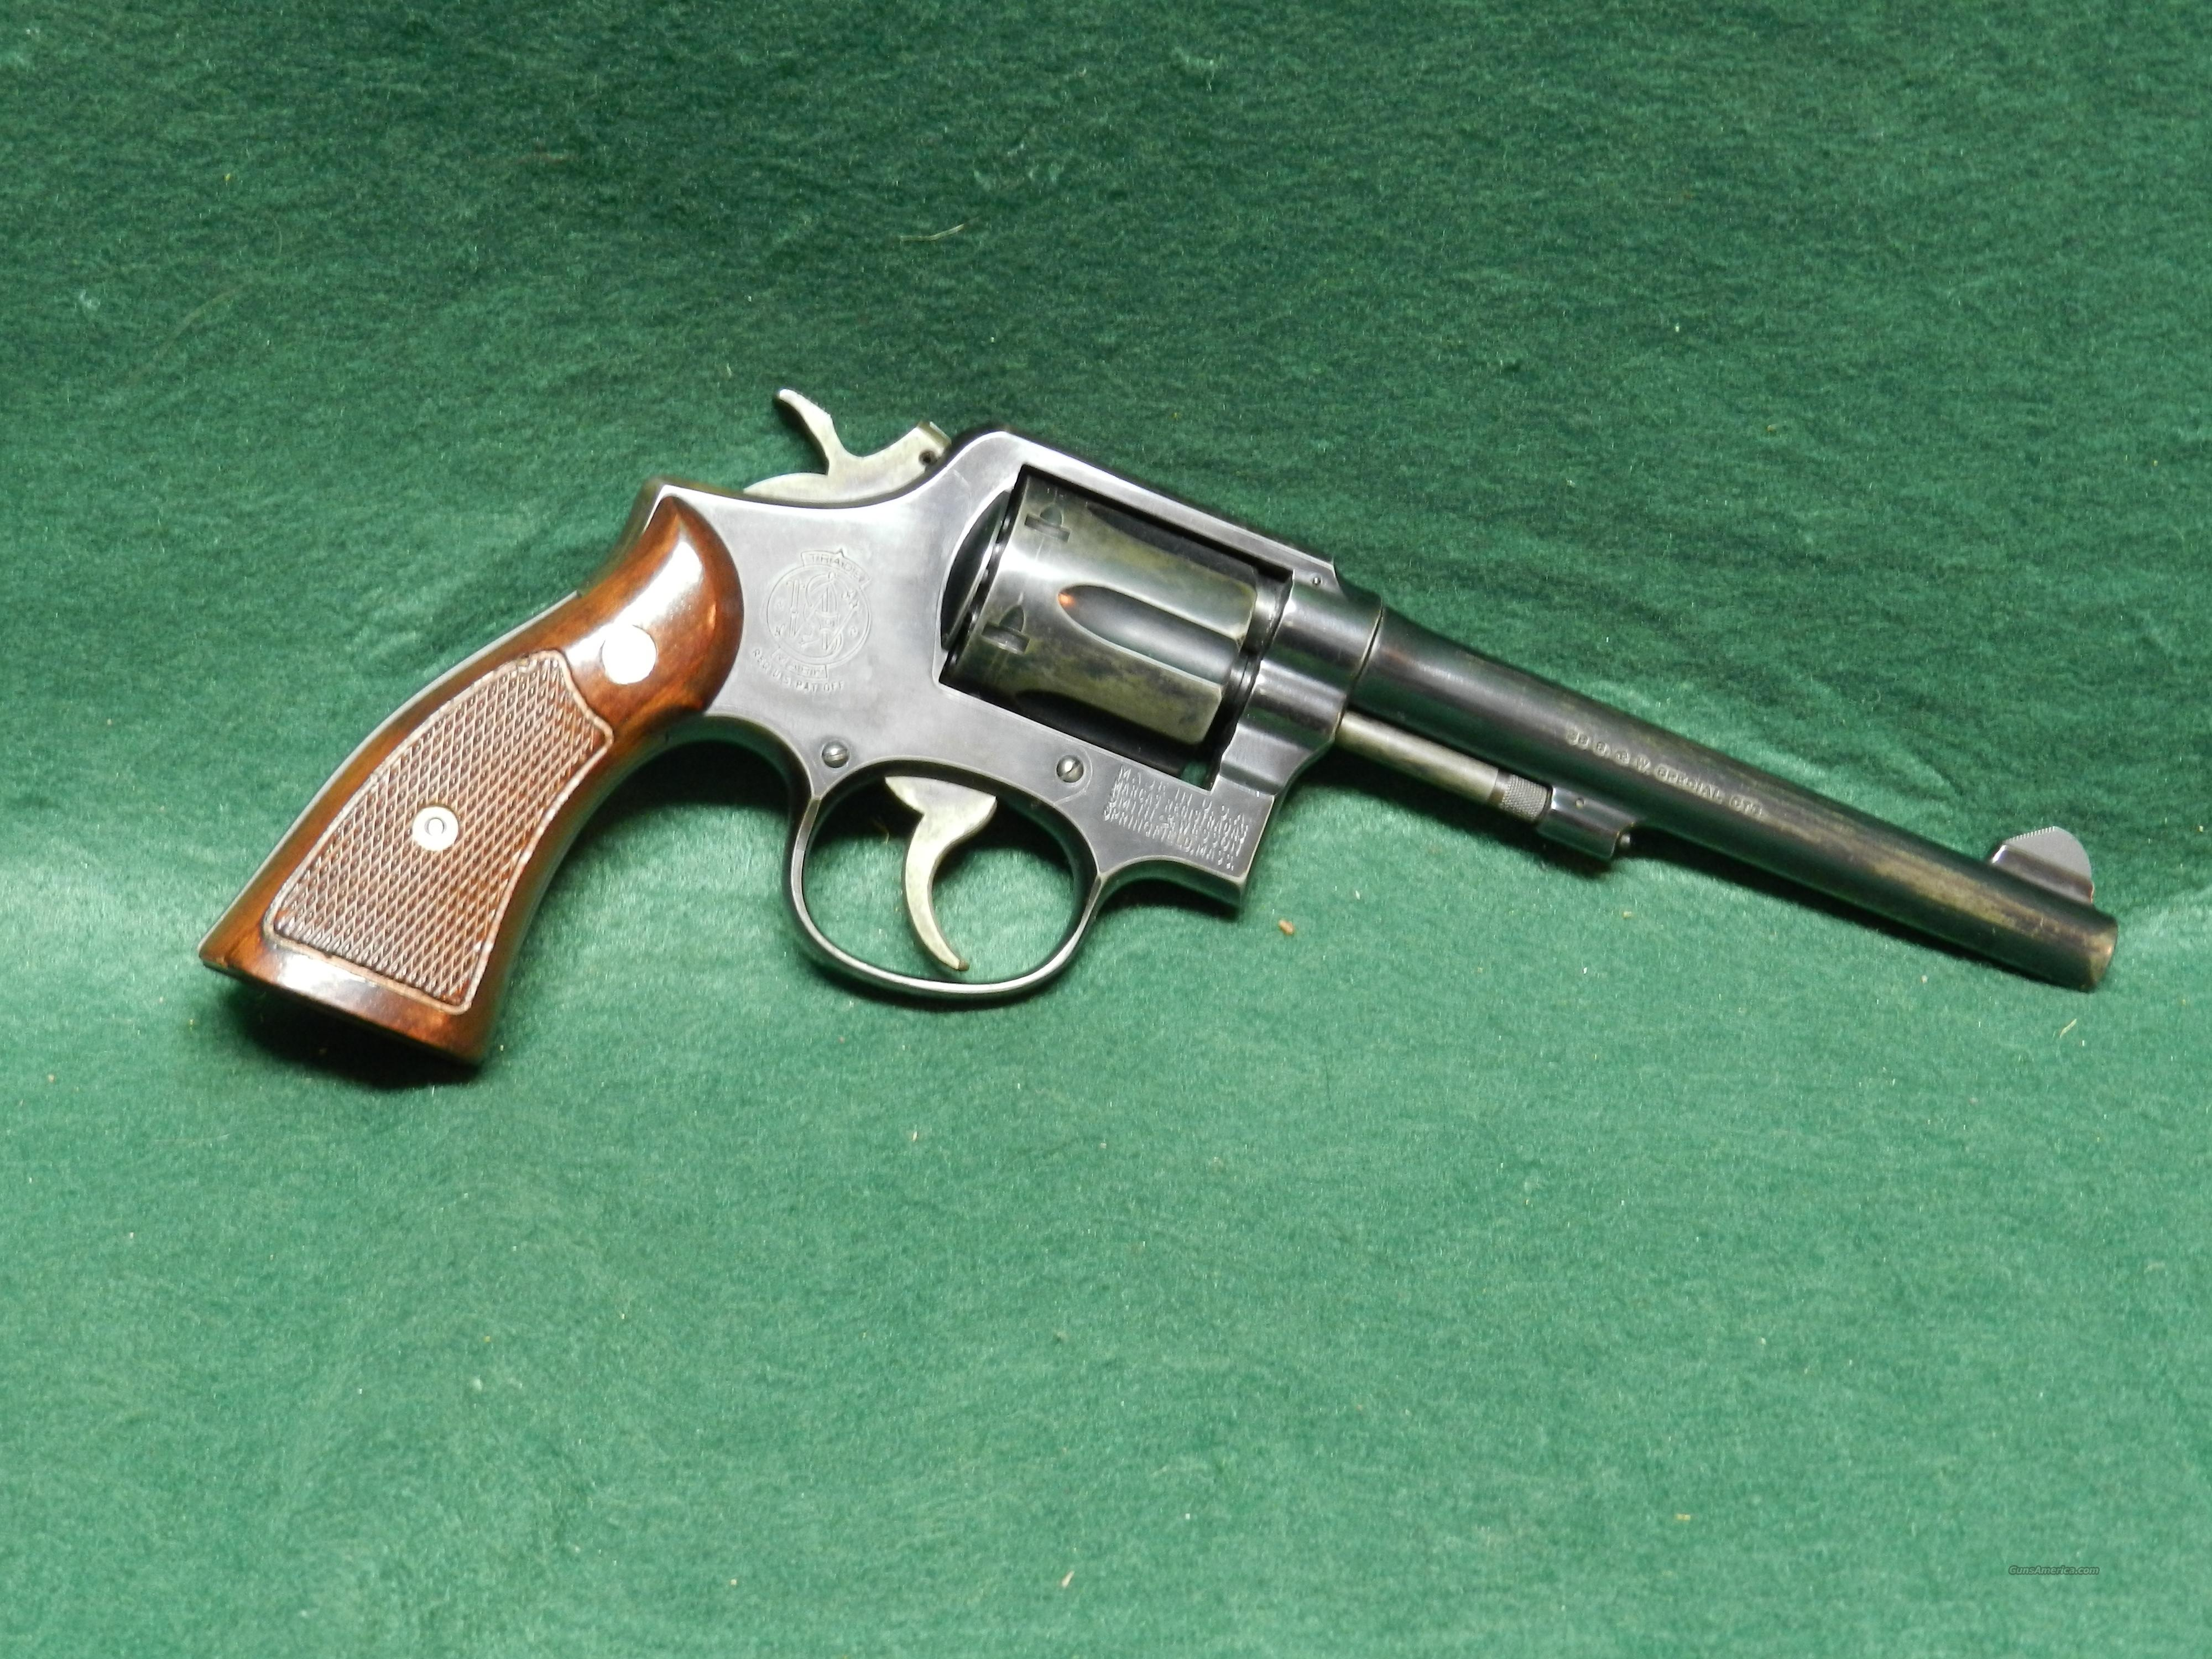 Smith & Wesson Model 10-5  Guns > Pistols > Smith & Wesson Revolvers > Model 10